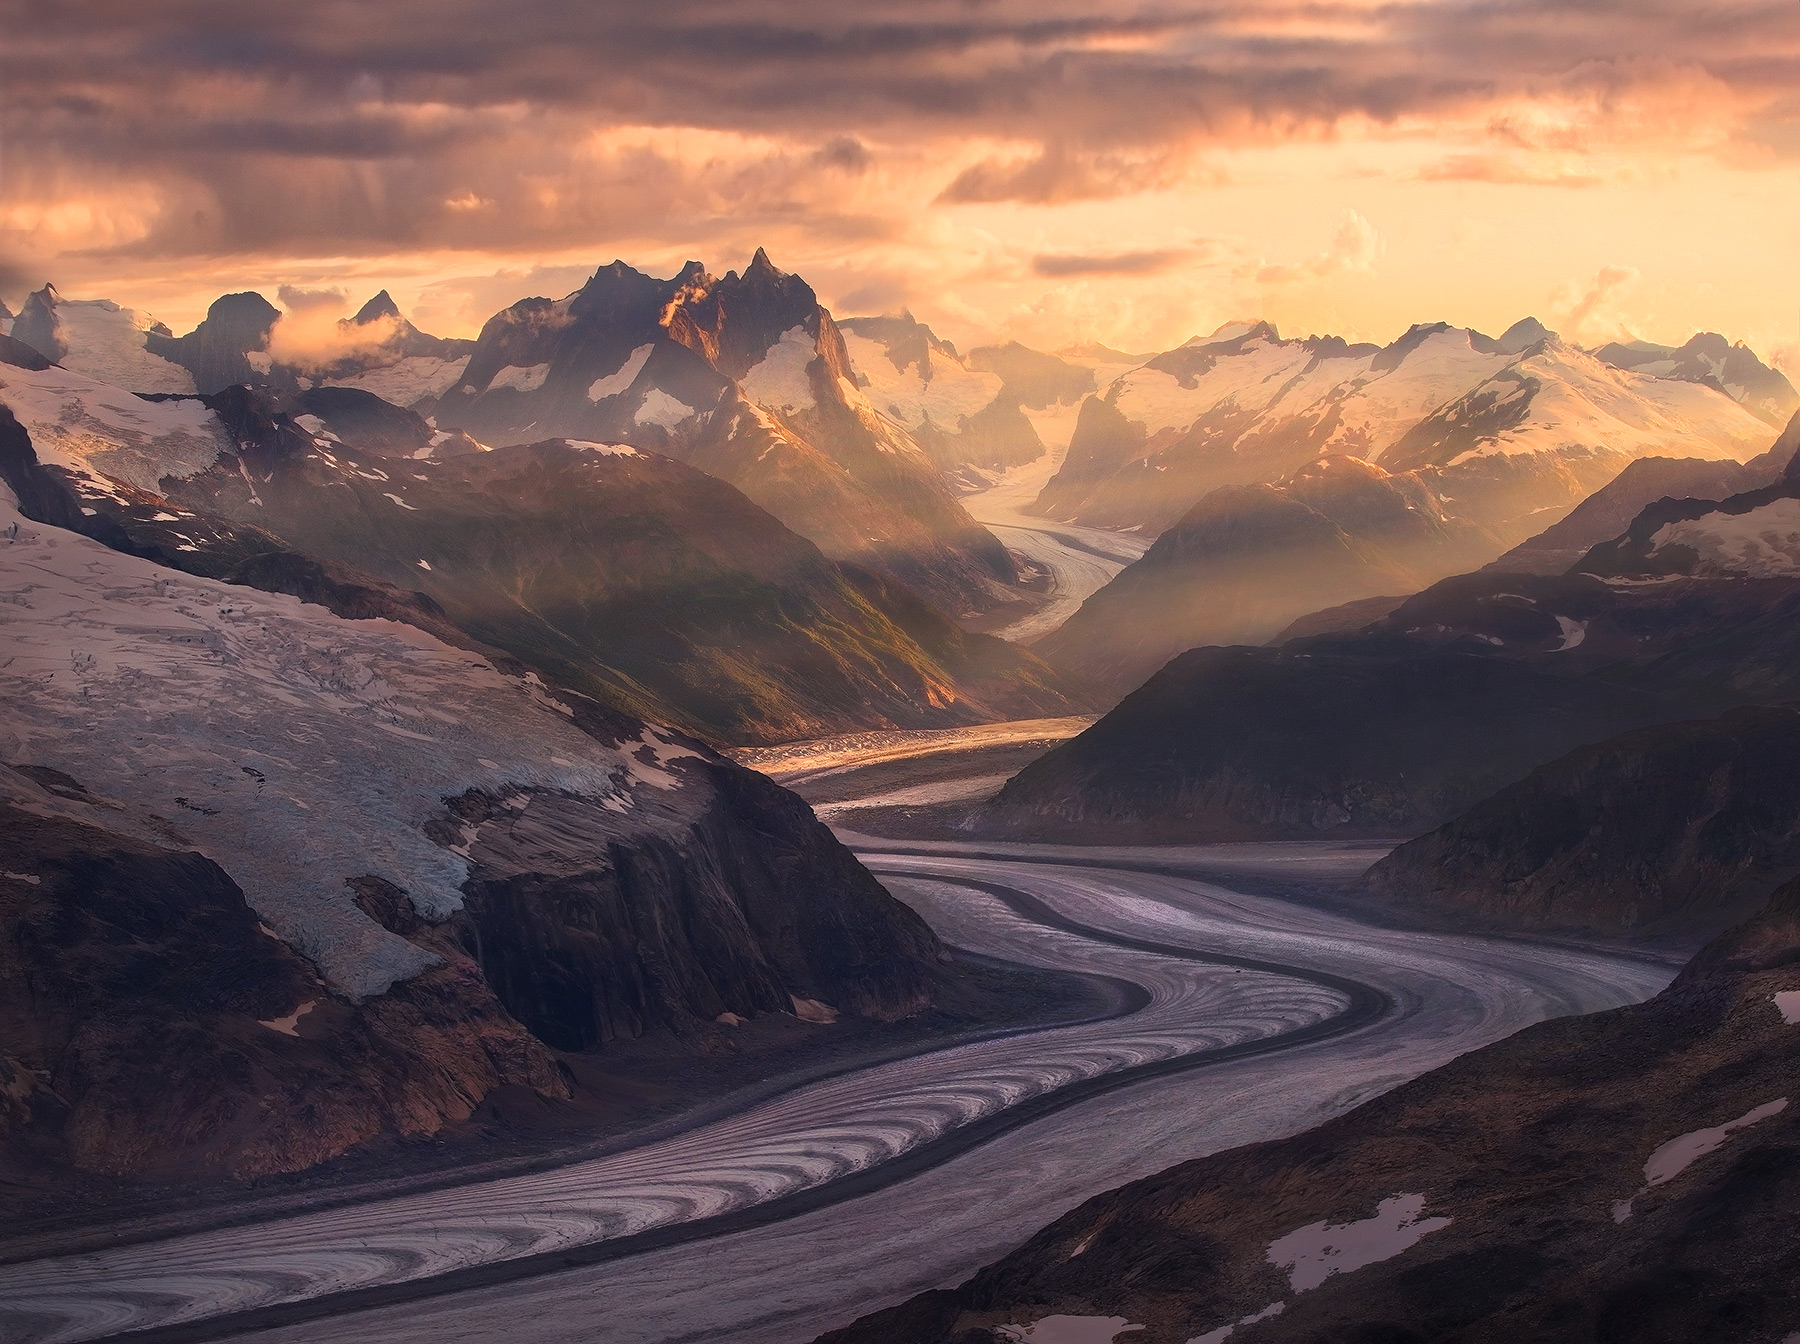 Glaciers wind their way through the amazing high peaks of Alaska's Boundary Range in the Coastal Mountains outside Juneau.